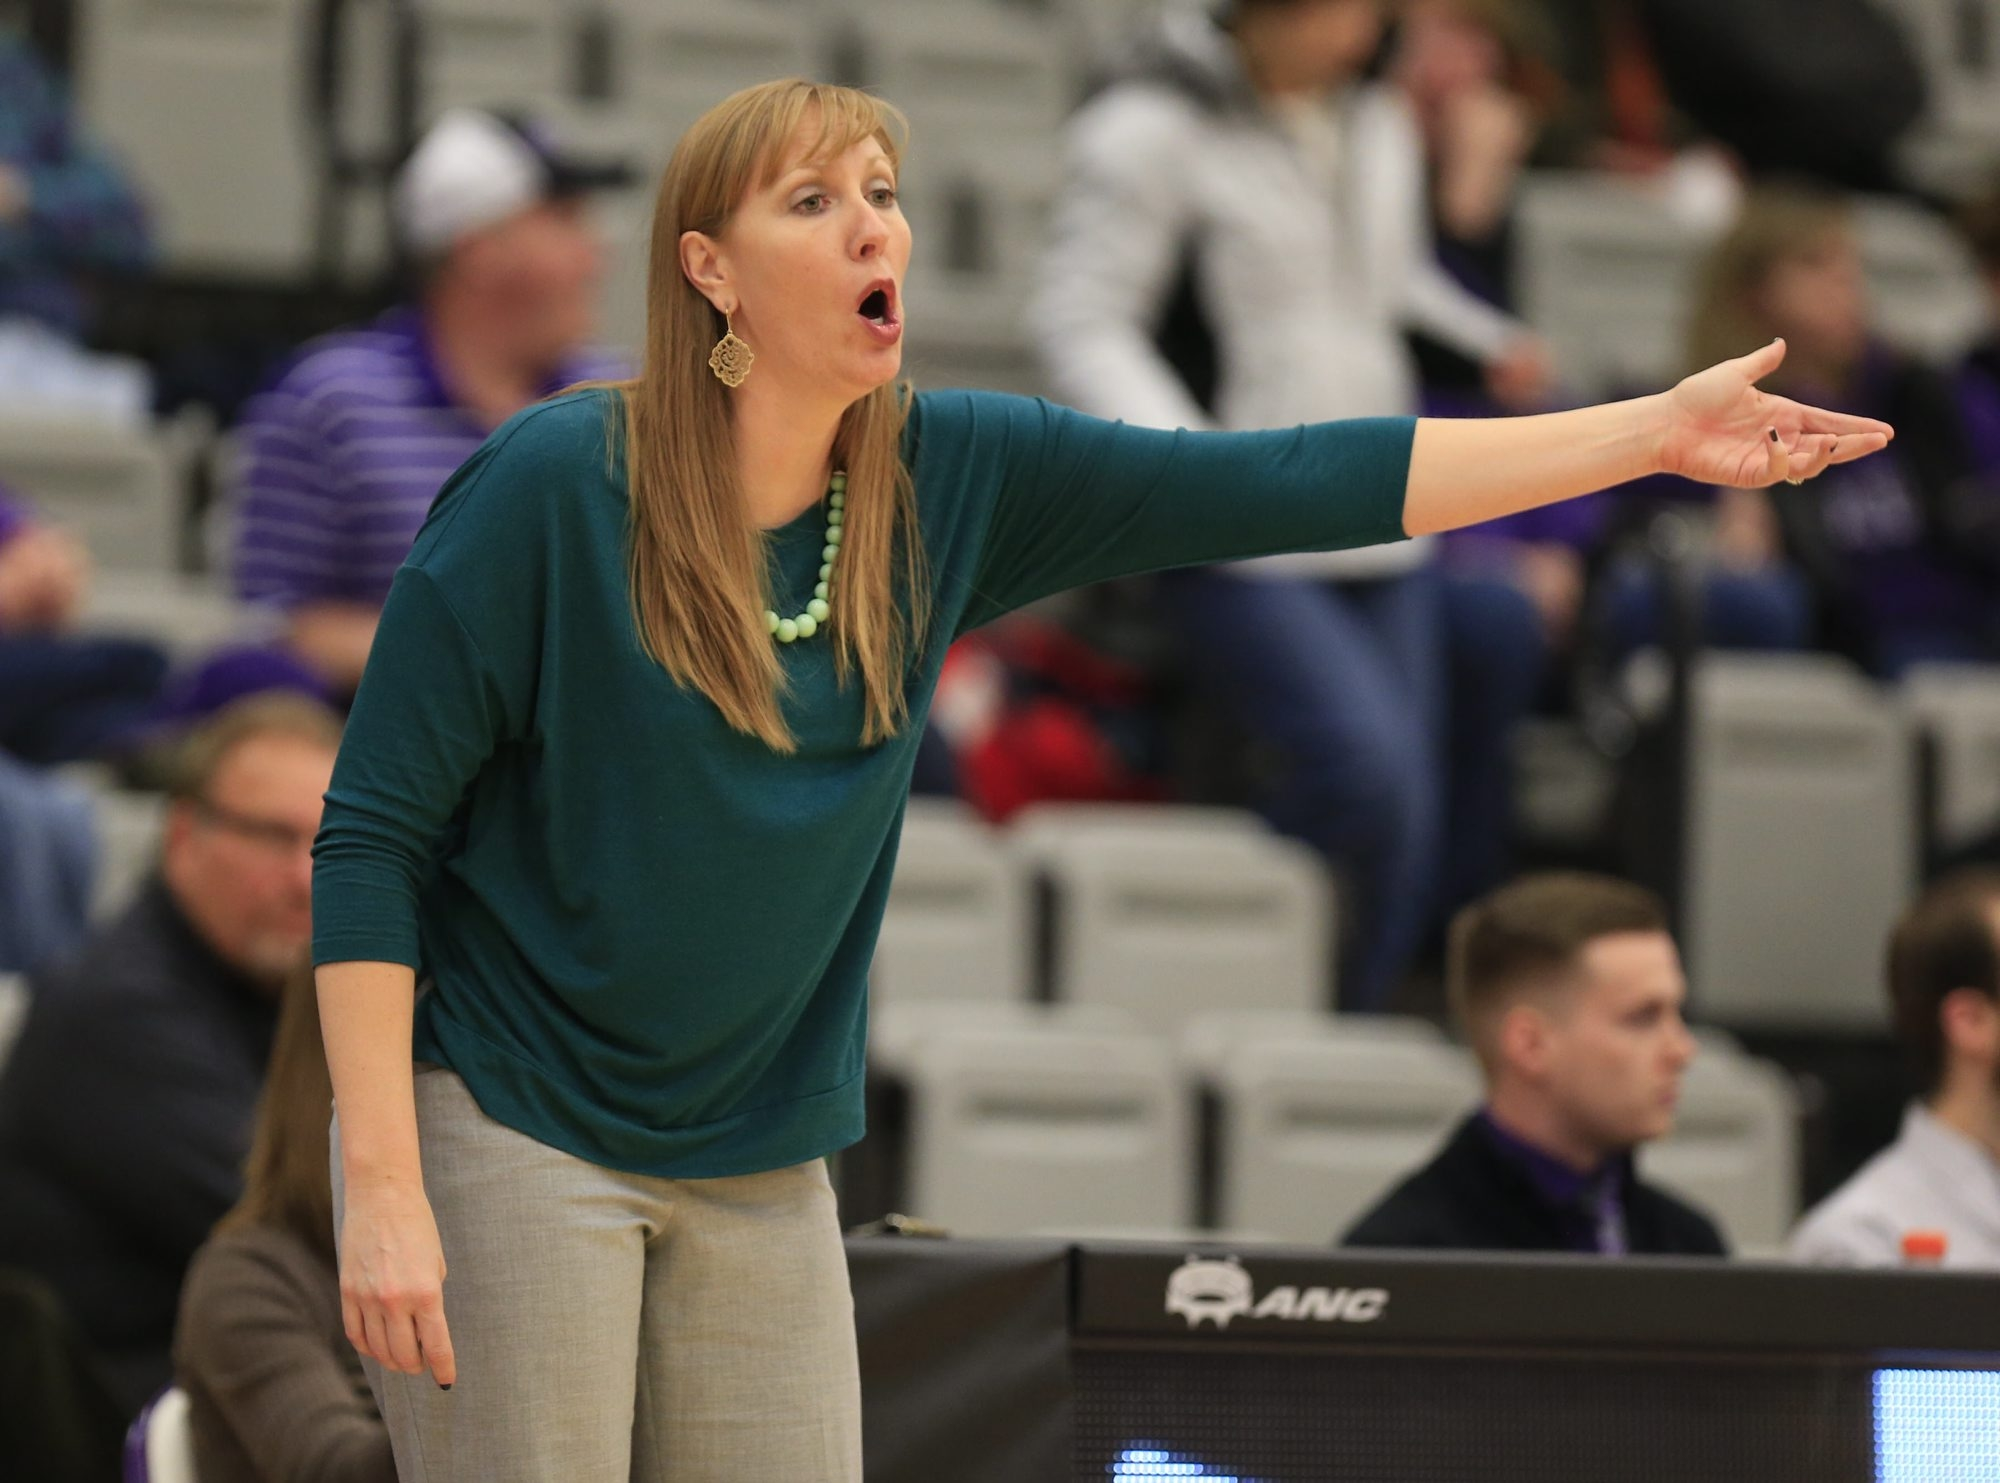 Kendra Faustin won't be pleading any cases on the Niagara University sideline next season. She is departing the school to take a job coaching the Ferris State women's basketball team in Michigan.